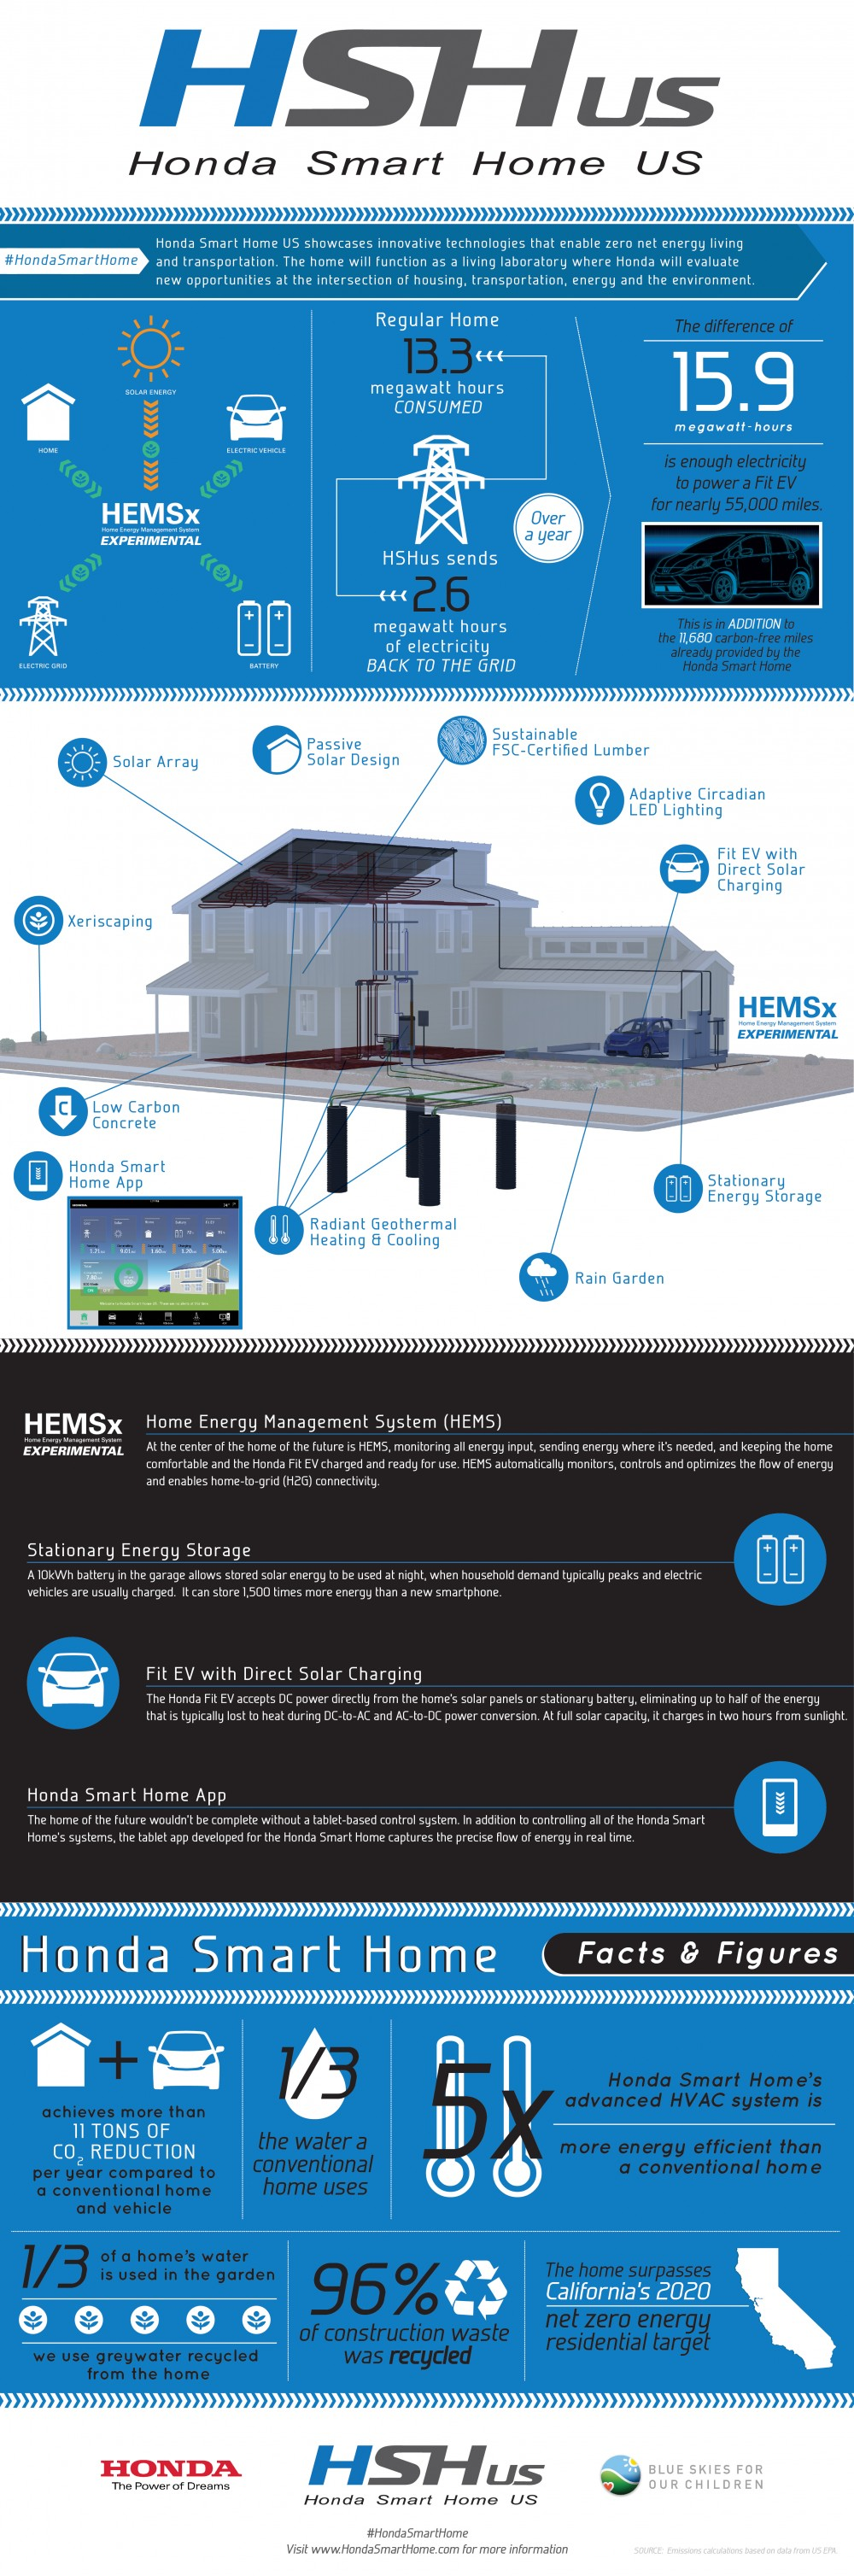 Honda smart home - ITGS case study